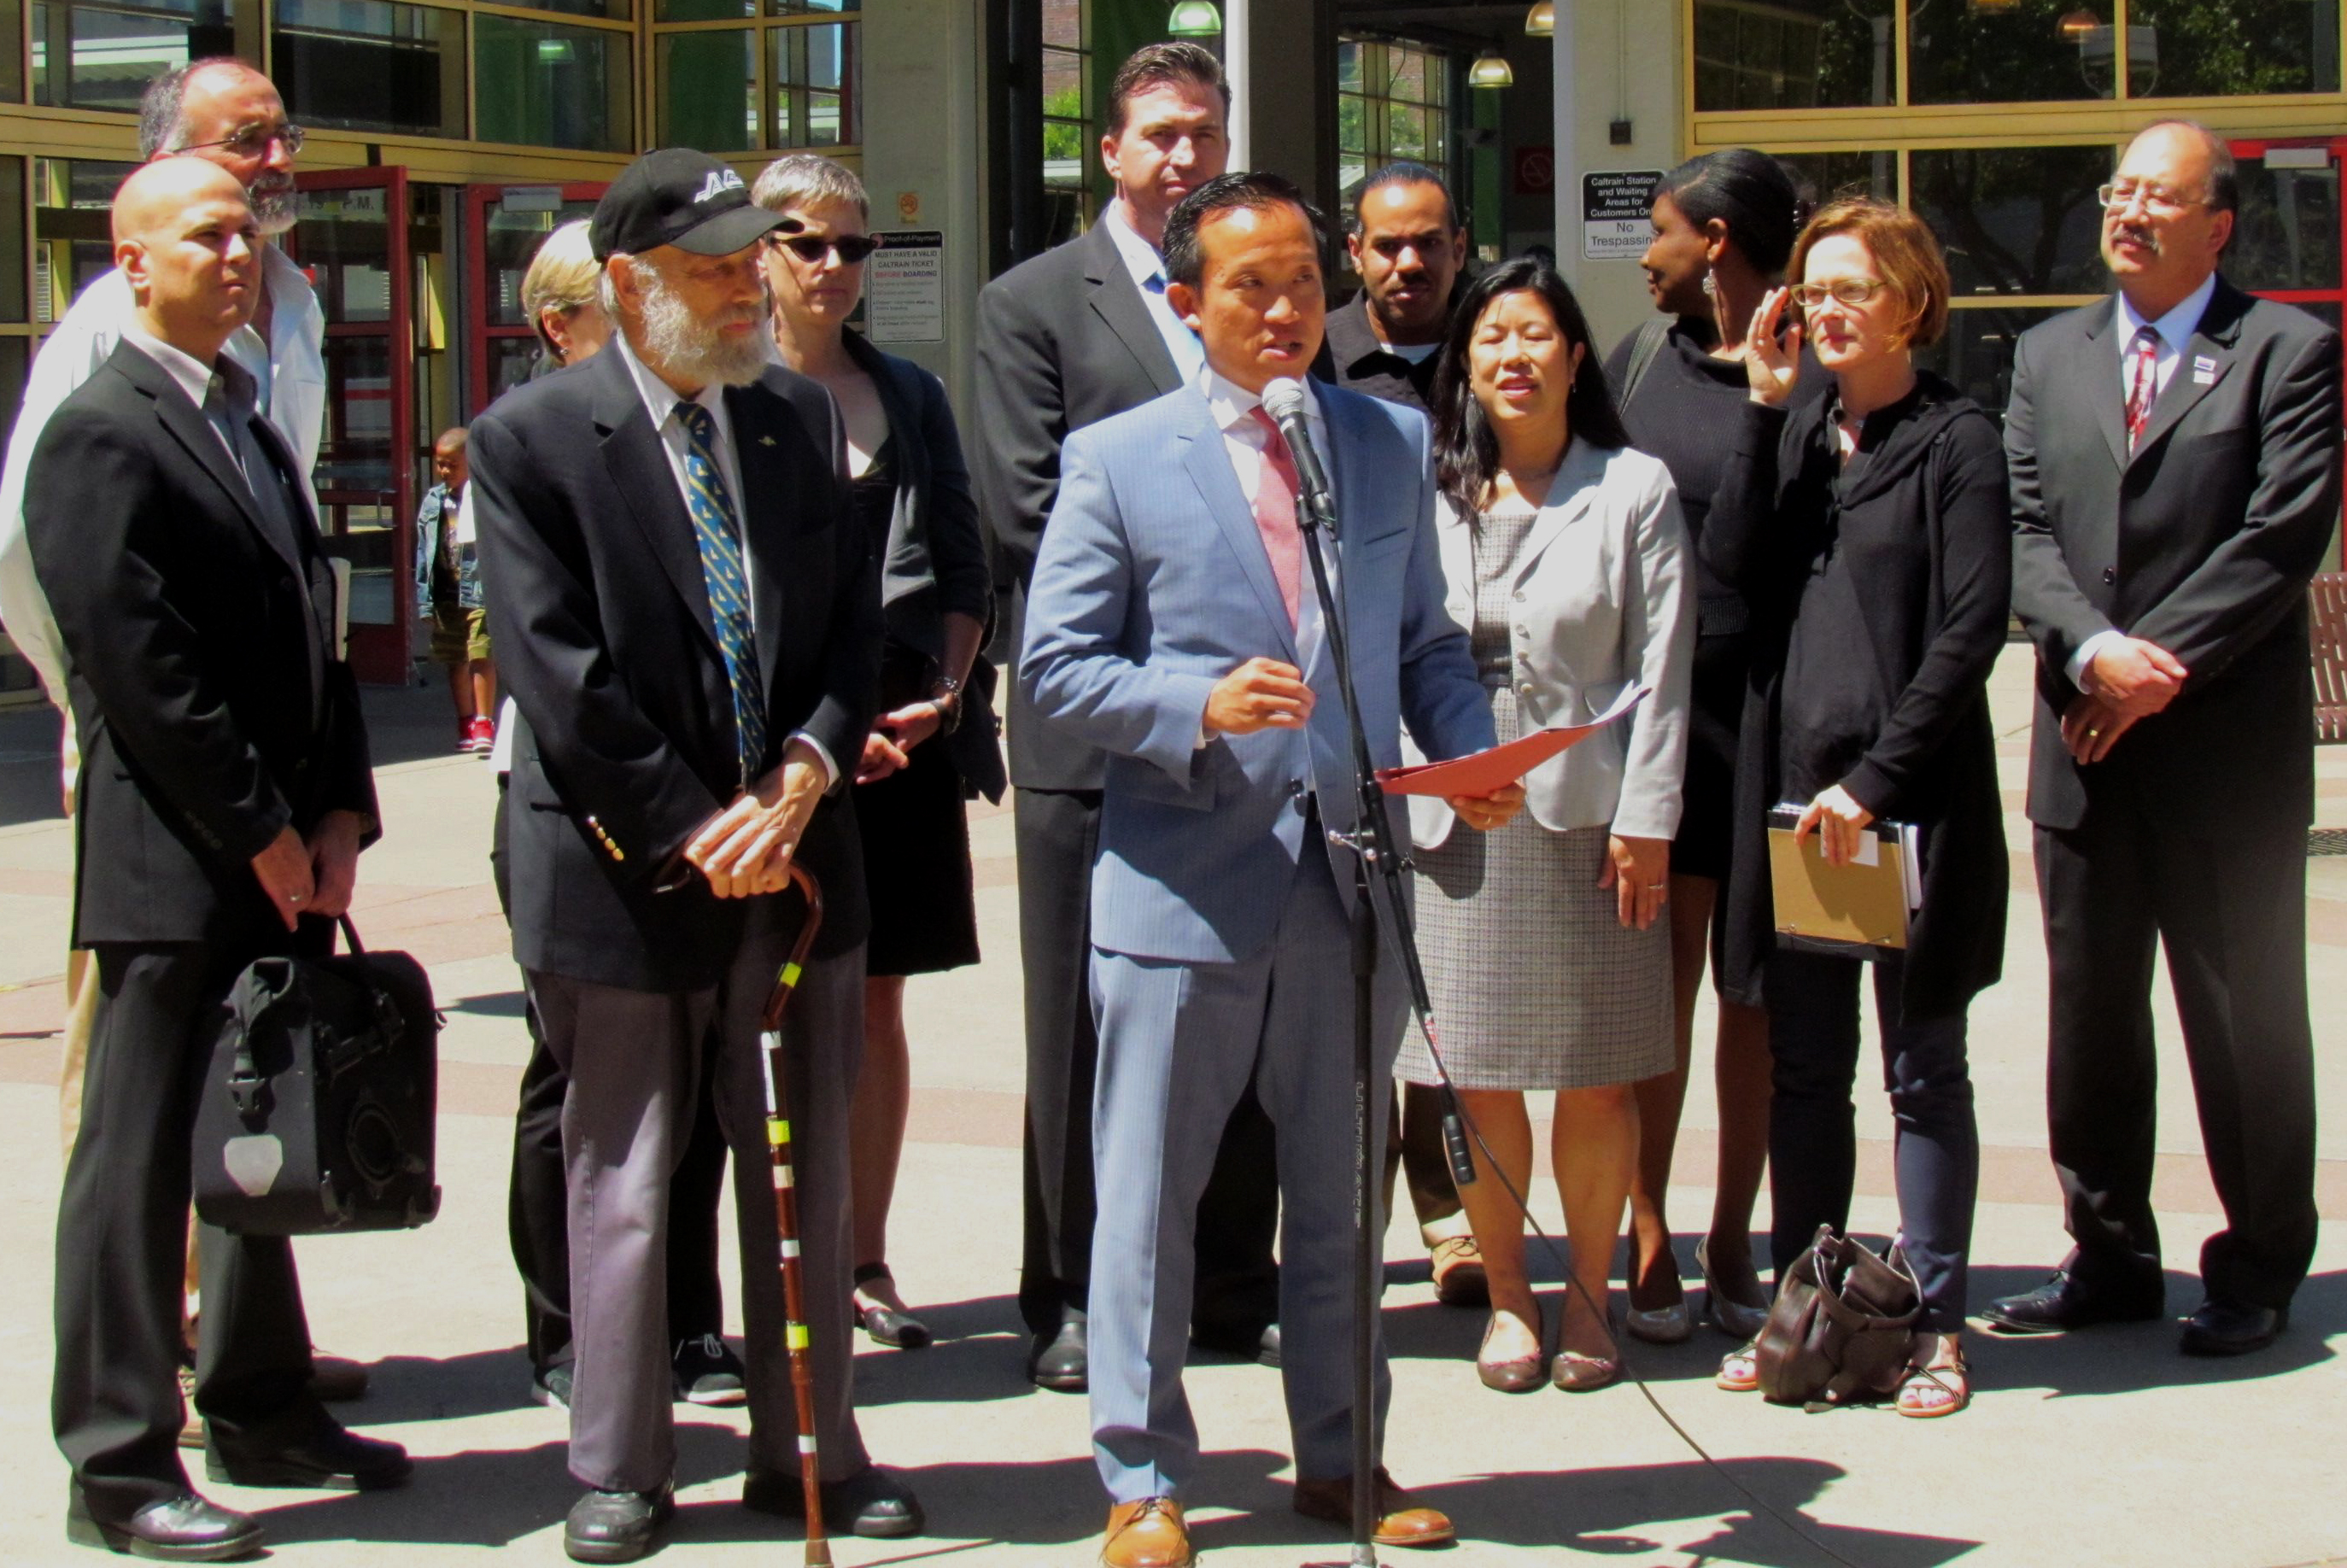 Assemblymember David Chiu proposes a packet of bills to fund transit, flanked by representatives from local transit agencies and advocates. Assemblymember Kevin Mullin is behind him. Photo: Melanie Curry/Streetsblog